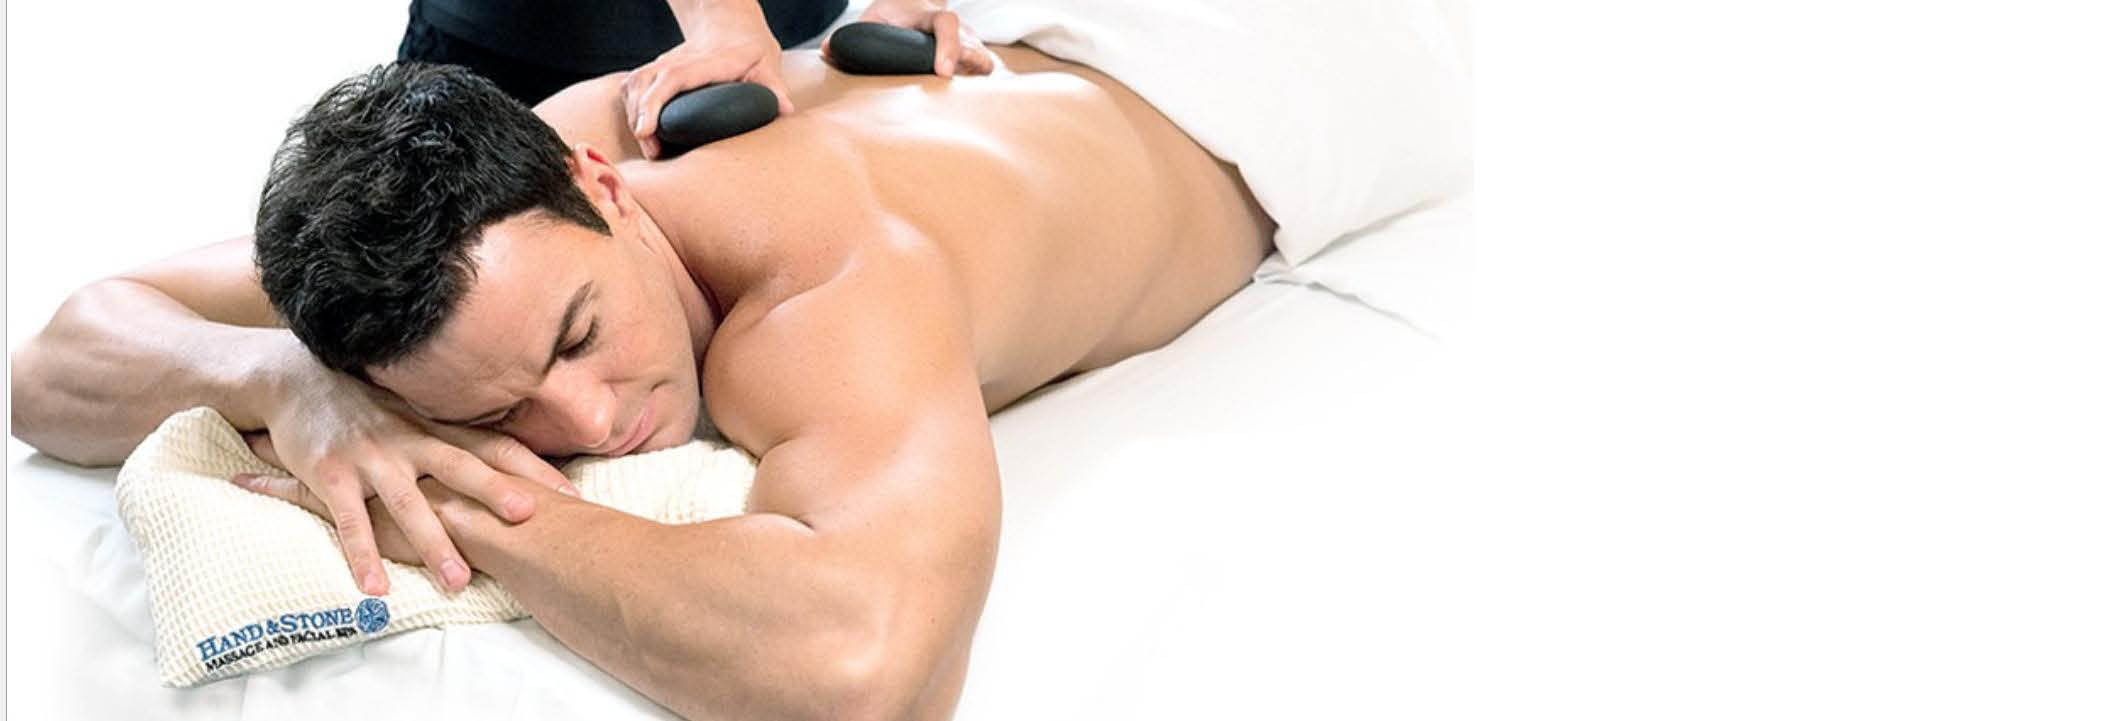 hand and stone massage banner image